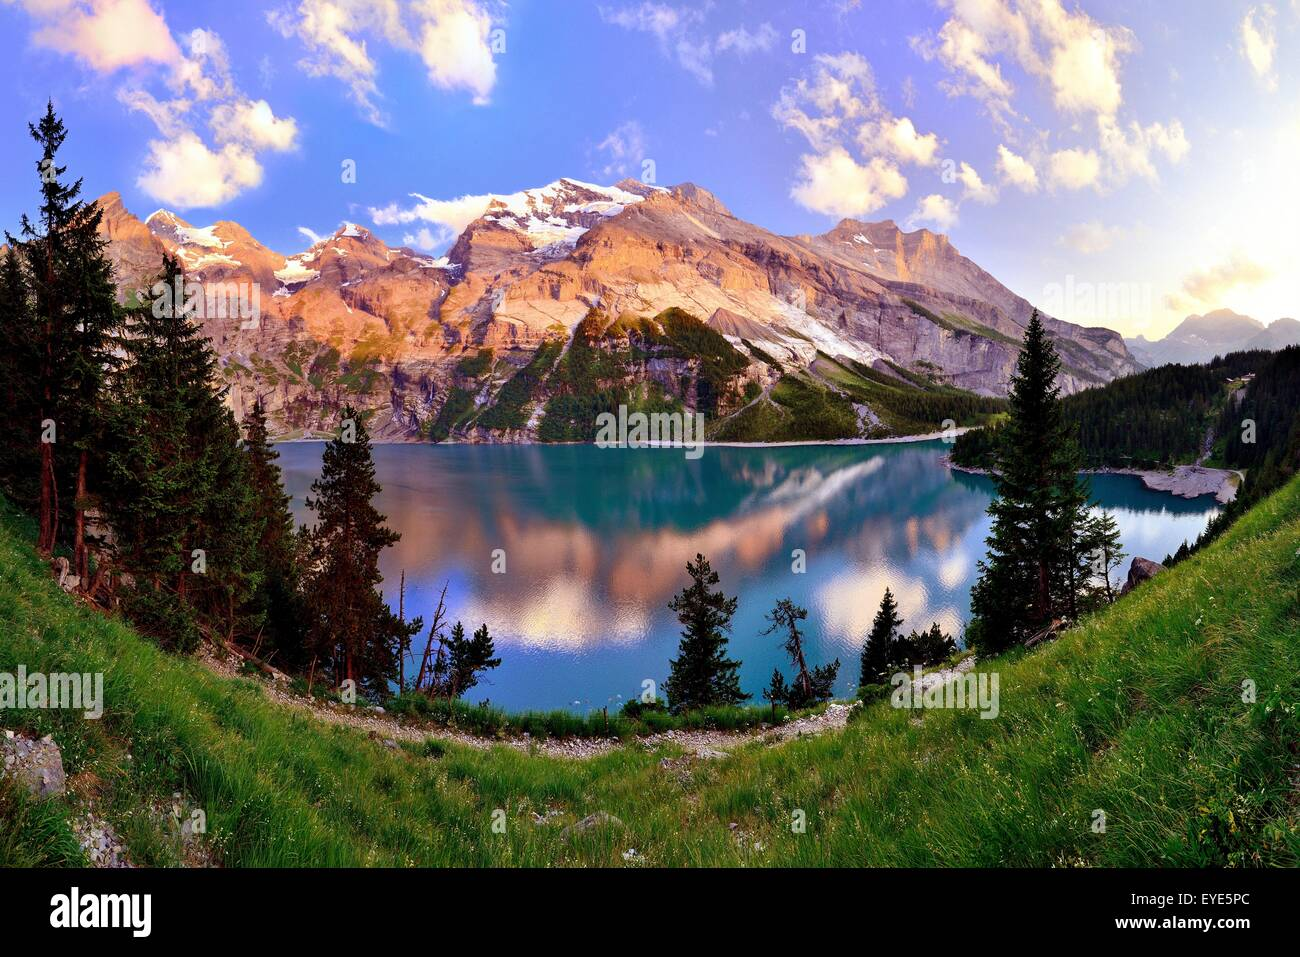 Mountains in the evening light at the Oeschinensee lake, UNESCO World Heritage Site, Kandersteg, Canton of Bern, - Stock Image